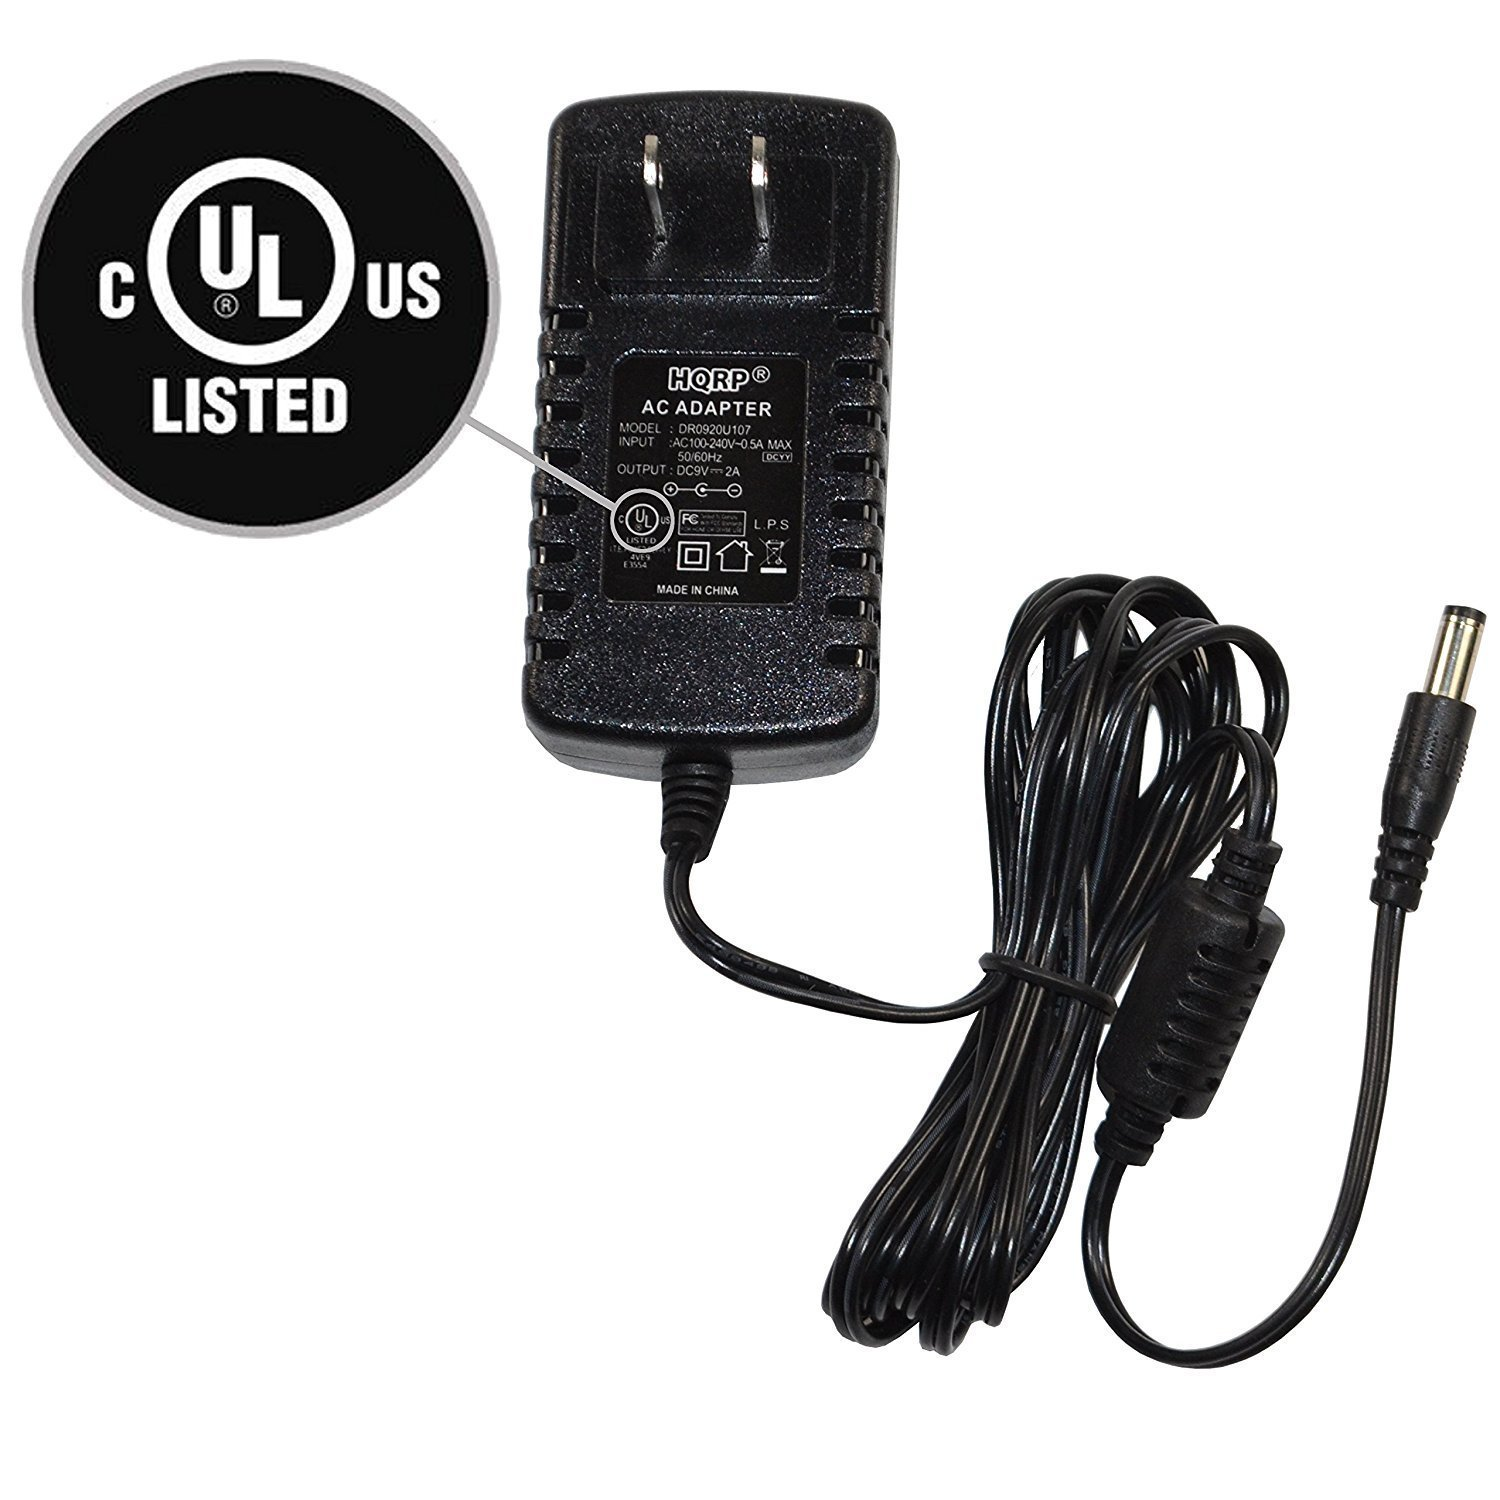 AC Adapter Charger For Dymo Rhino 3000 4200 5000 5200 6000 6500 Power Cord Mains